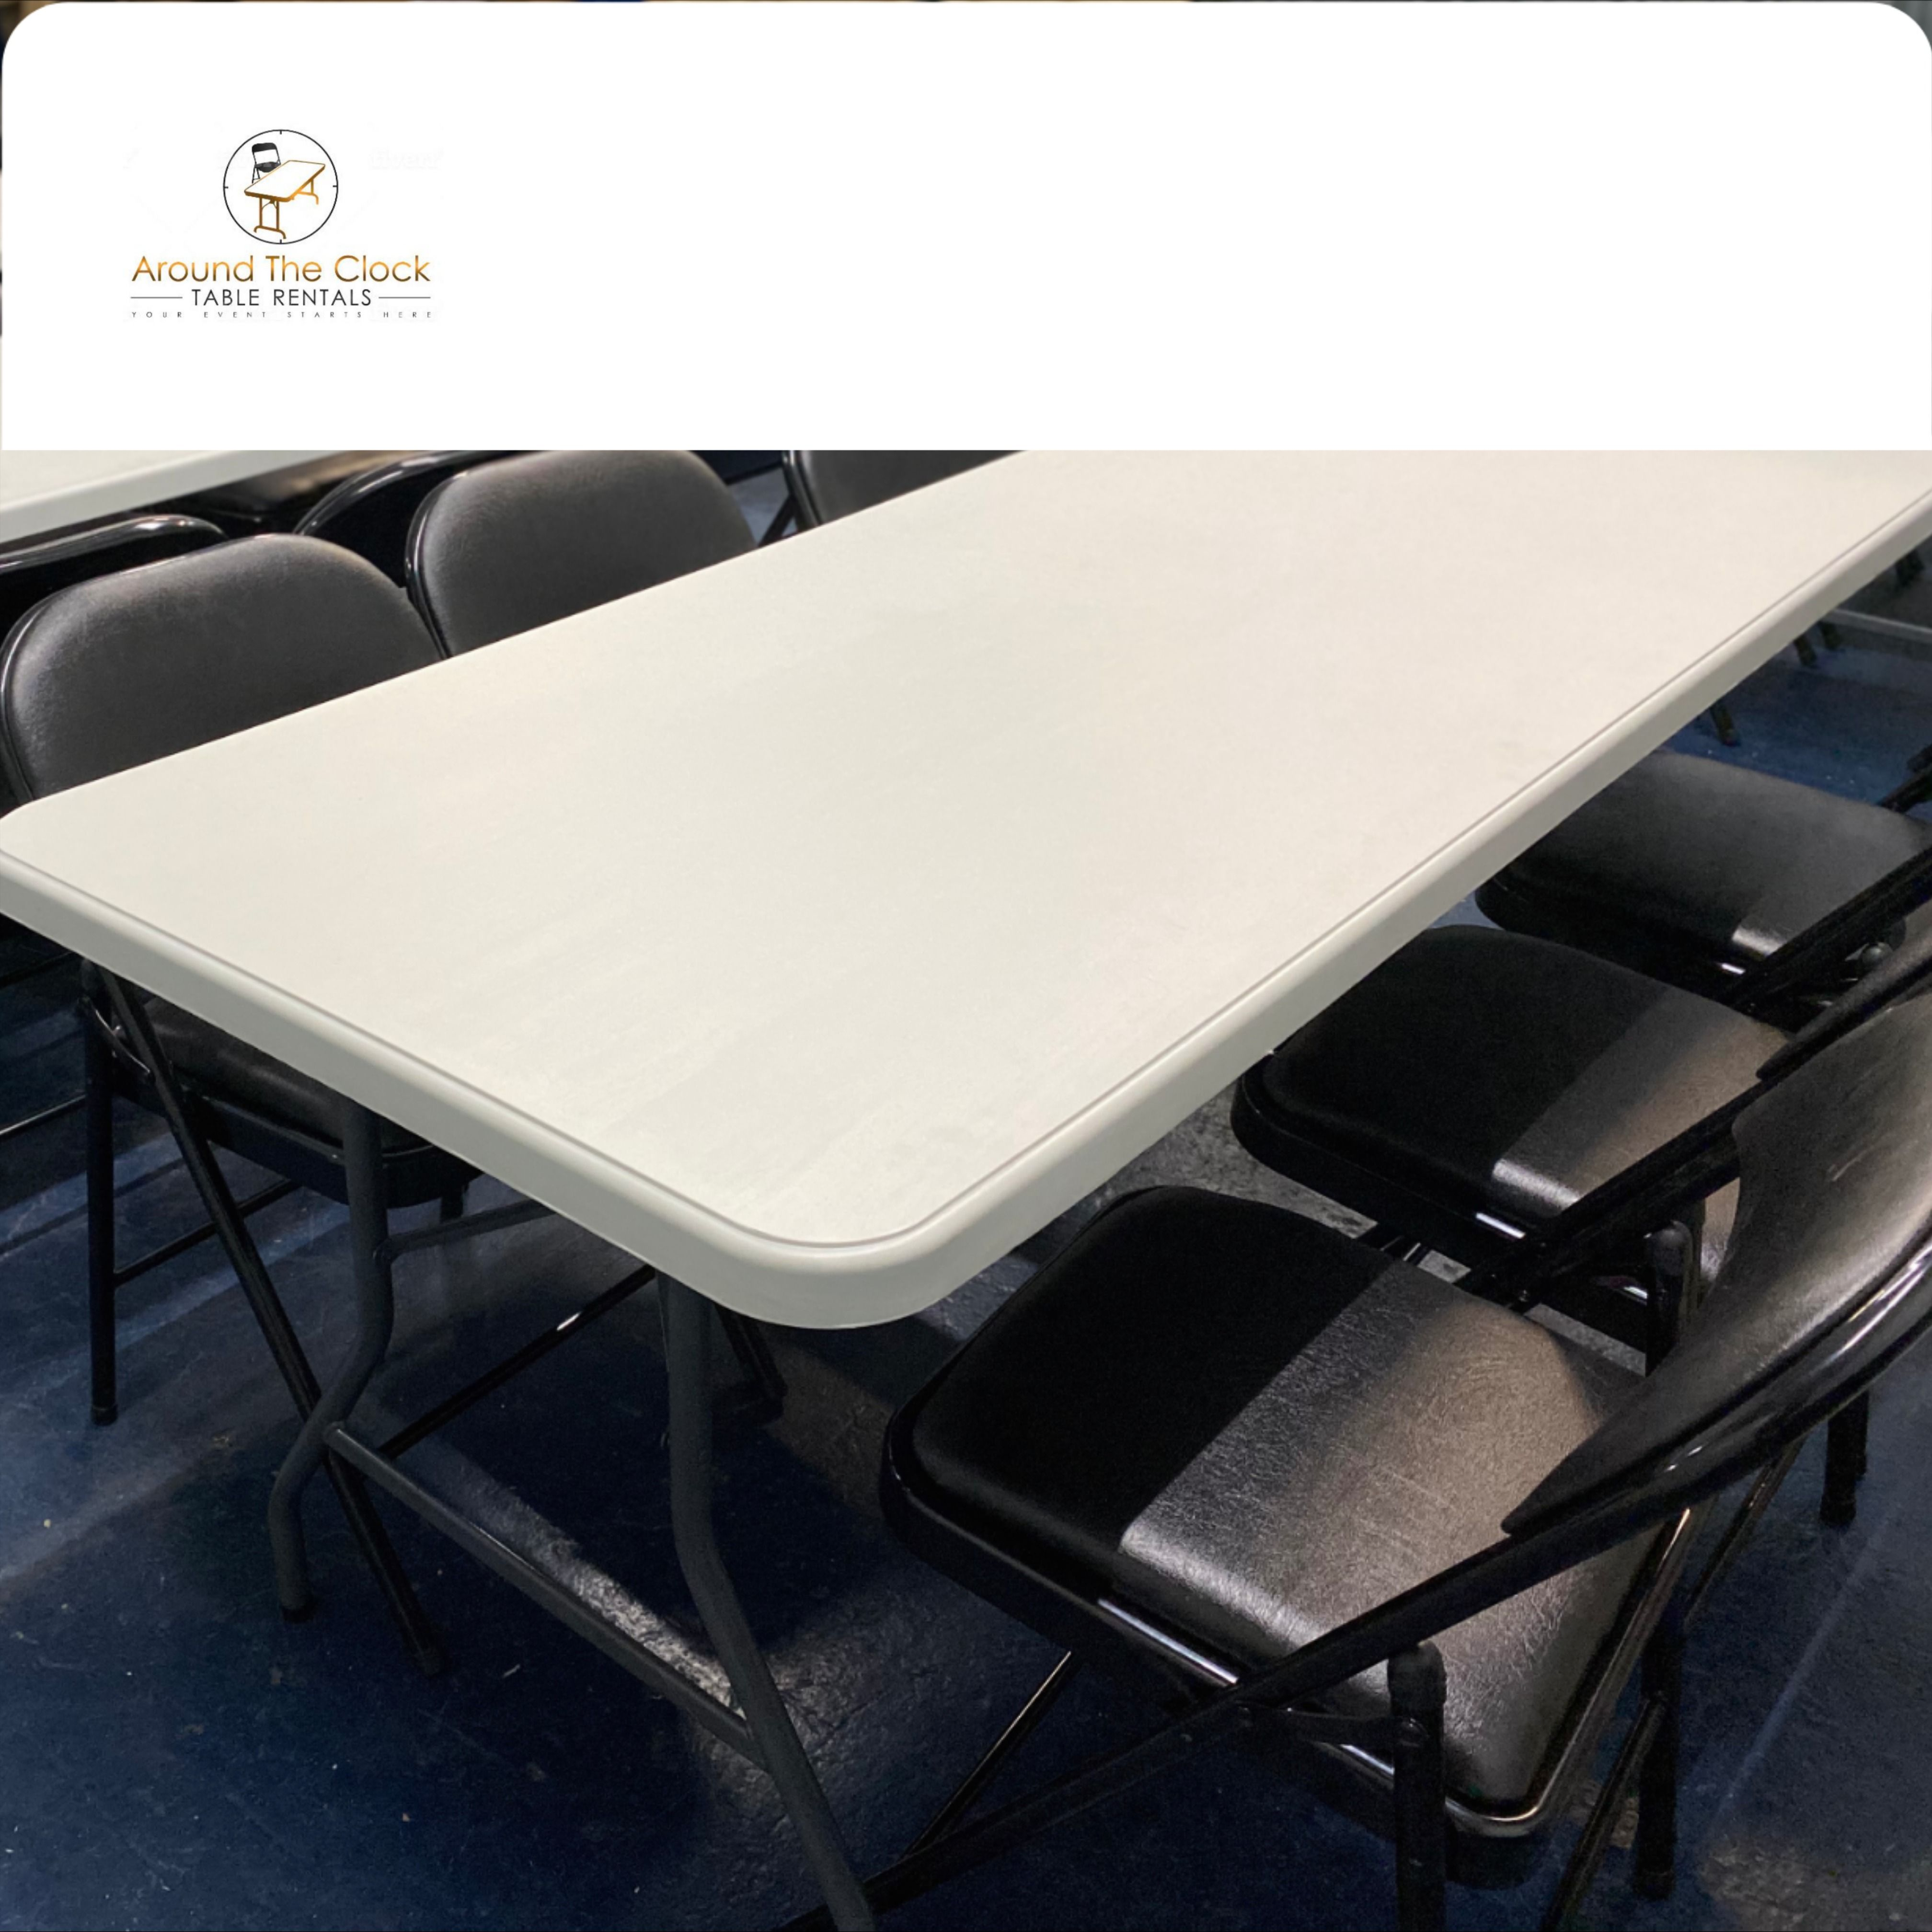 Pin On Table And Chair Rentals New York